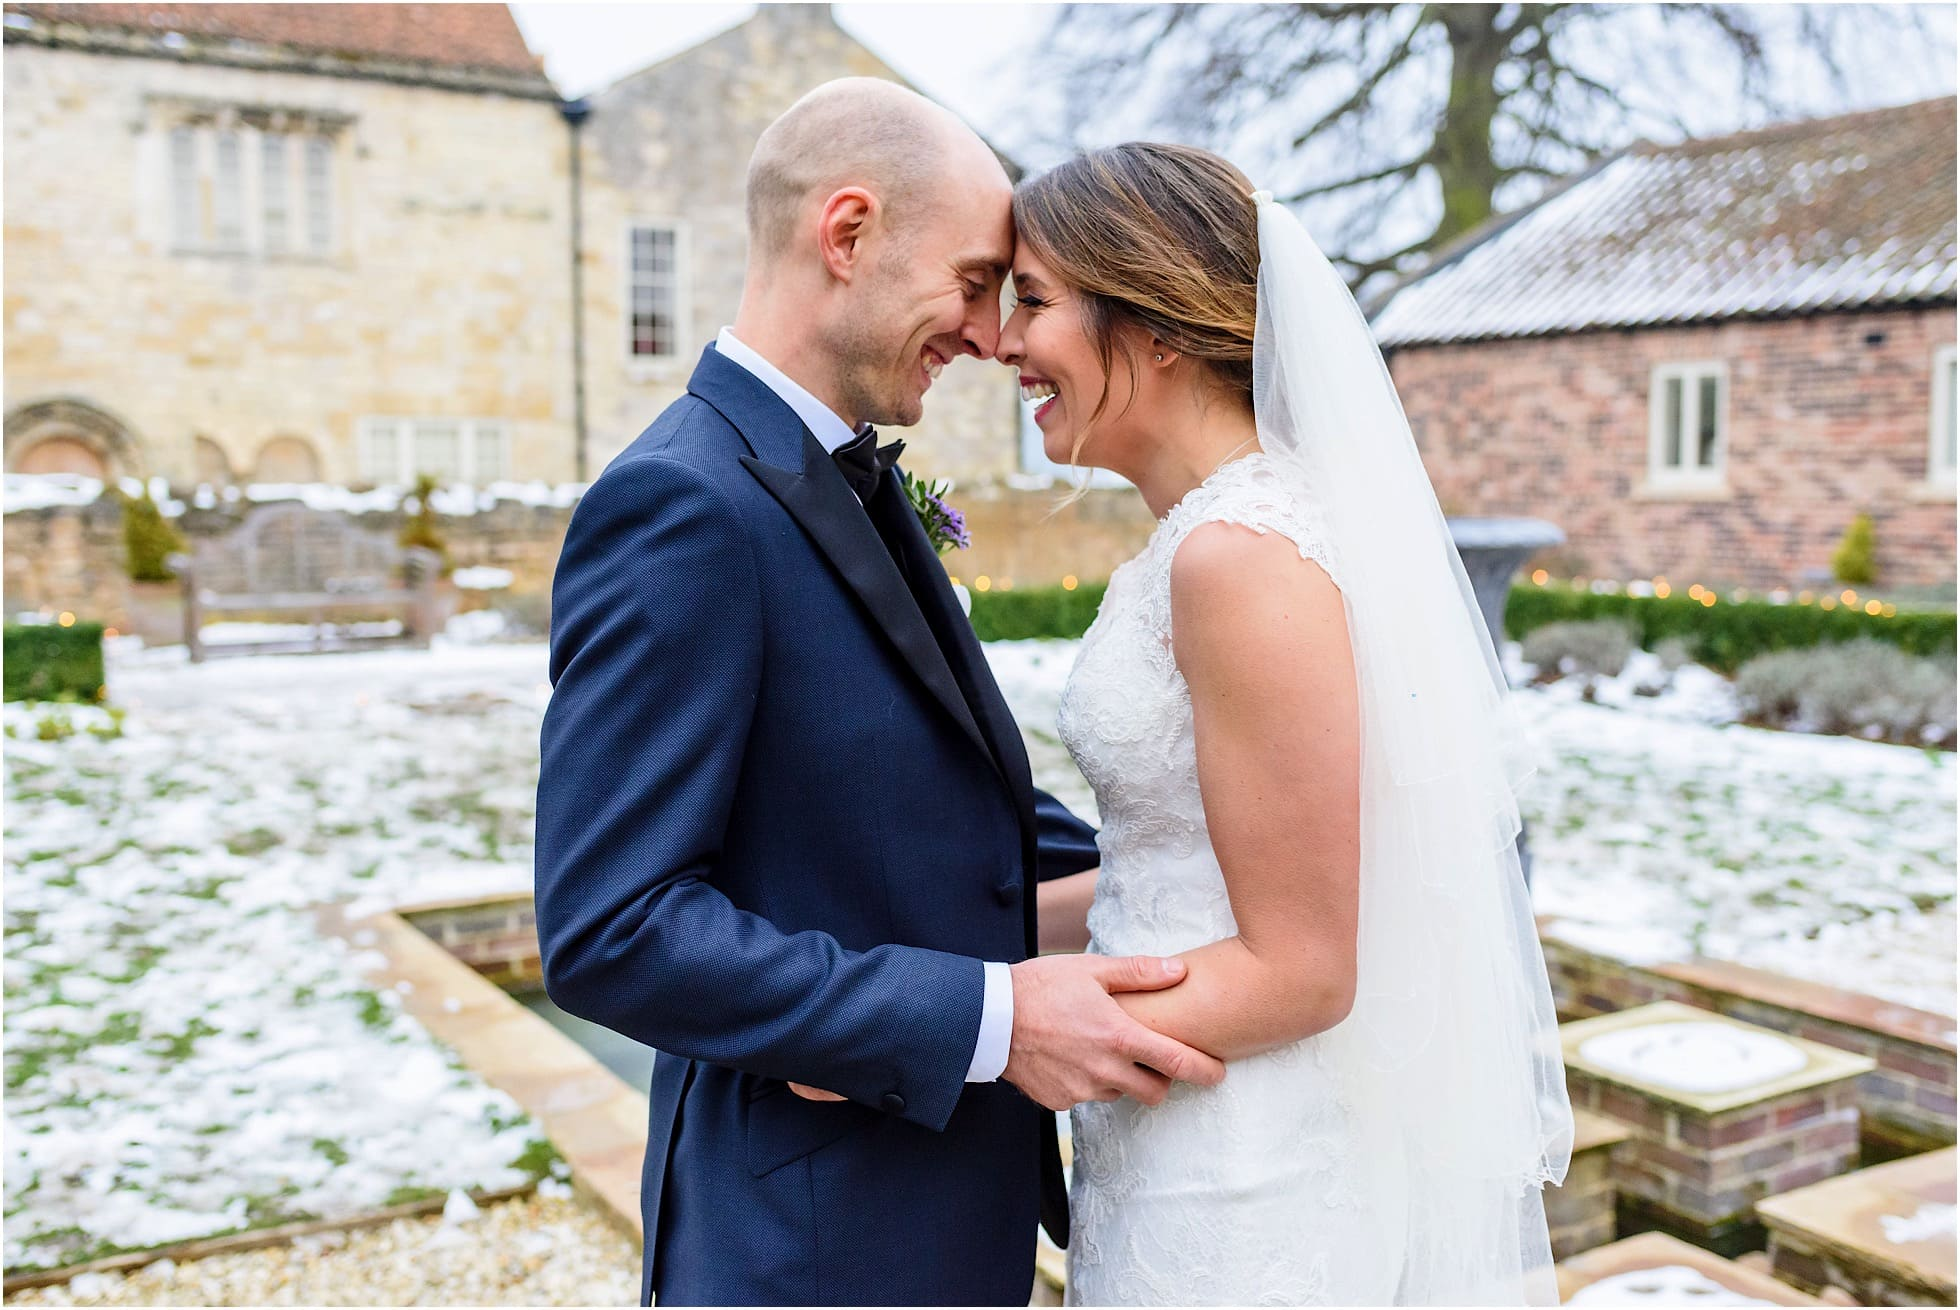 Fun winter wedding photo of bride and groom in yorkshire